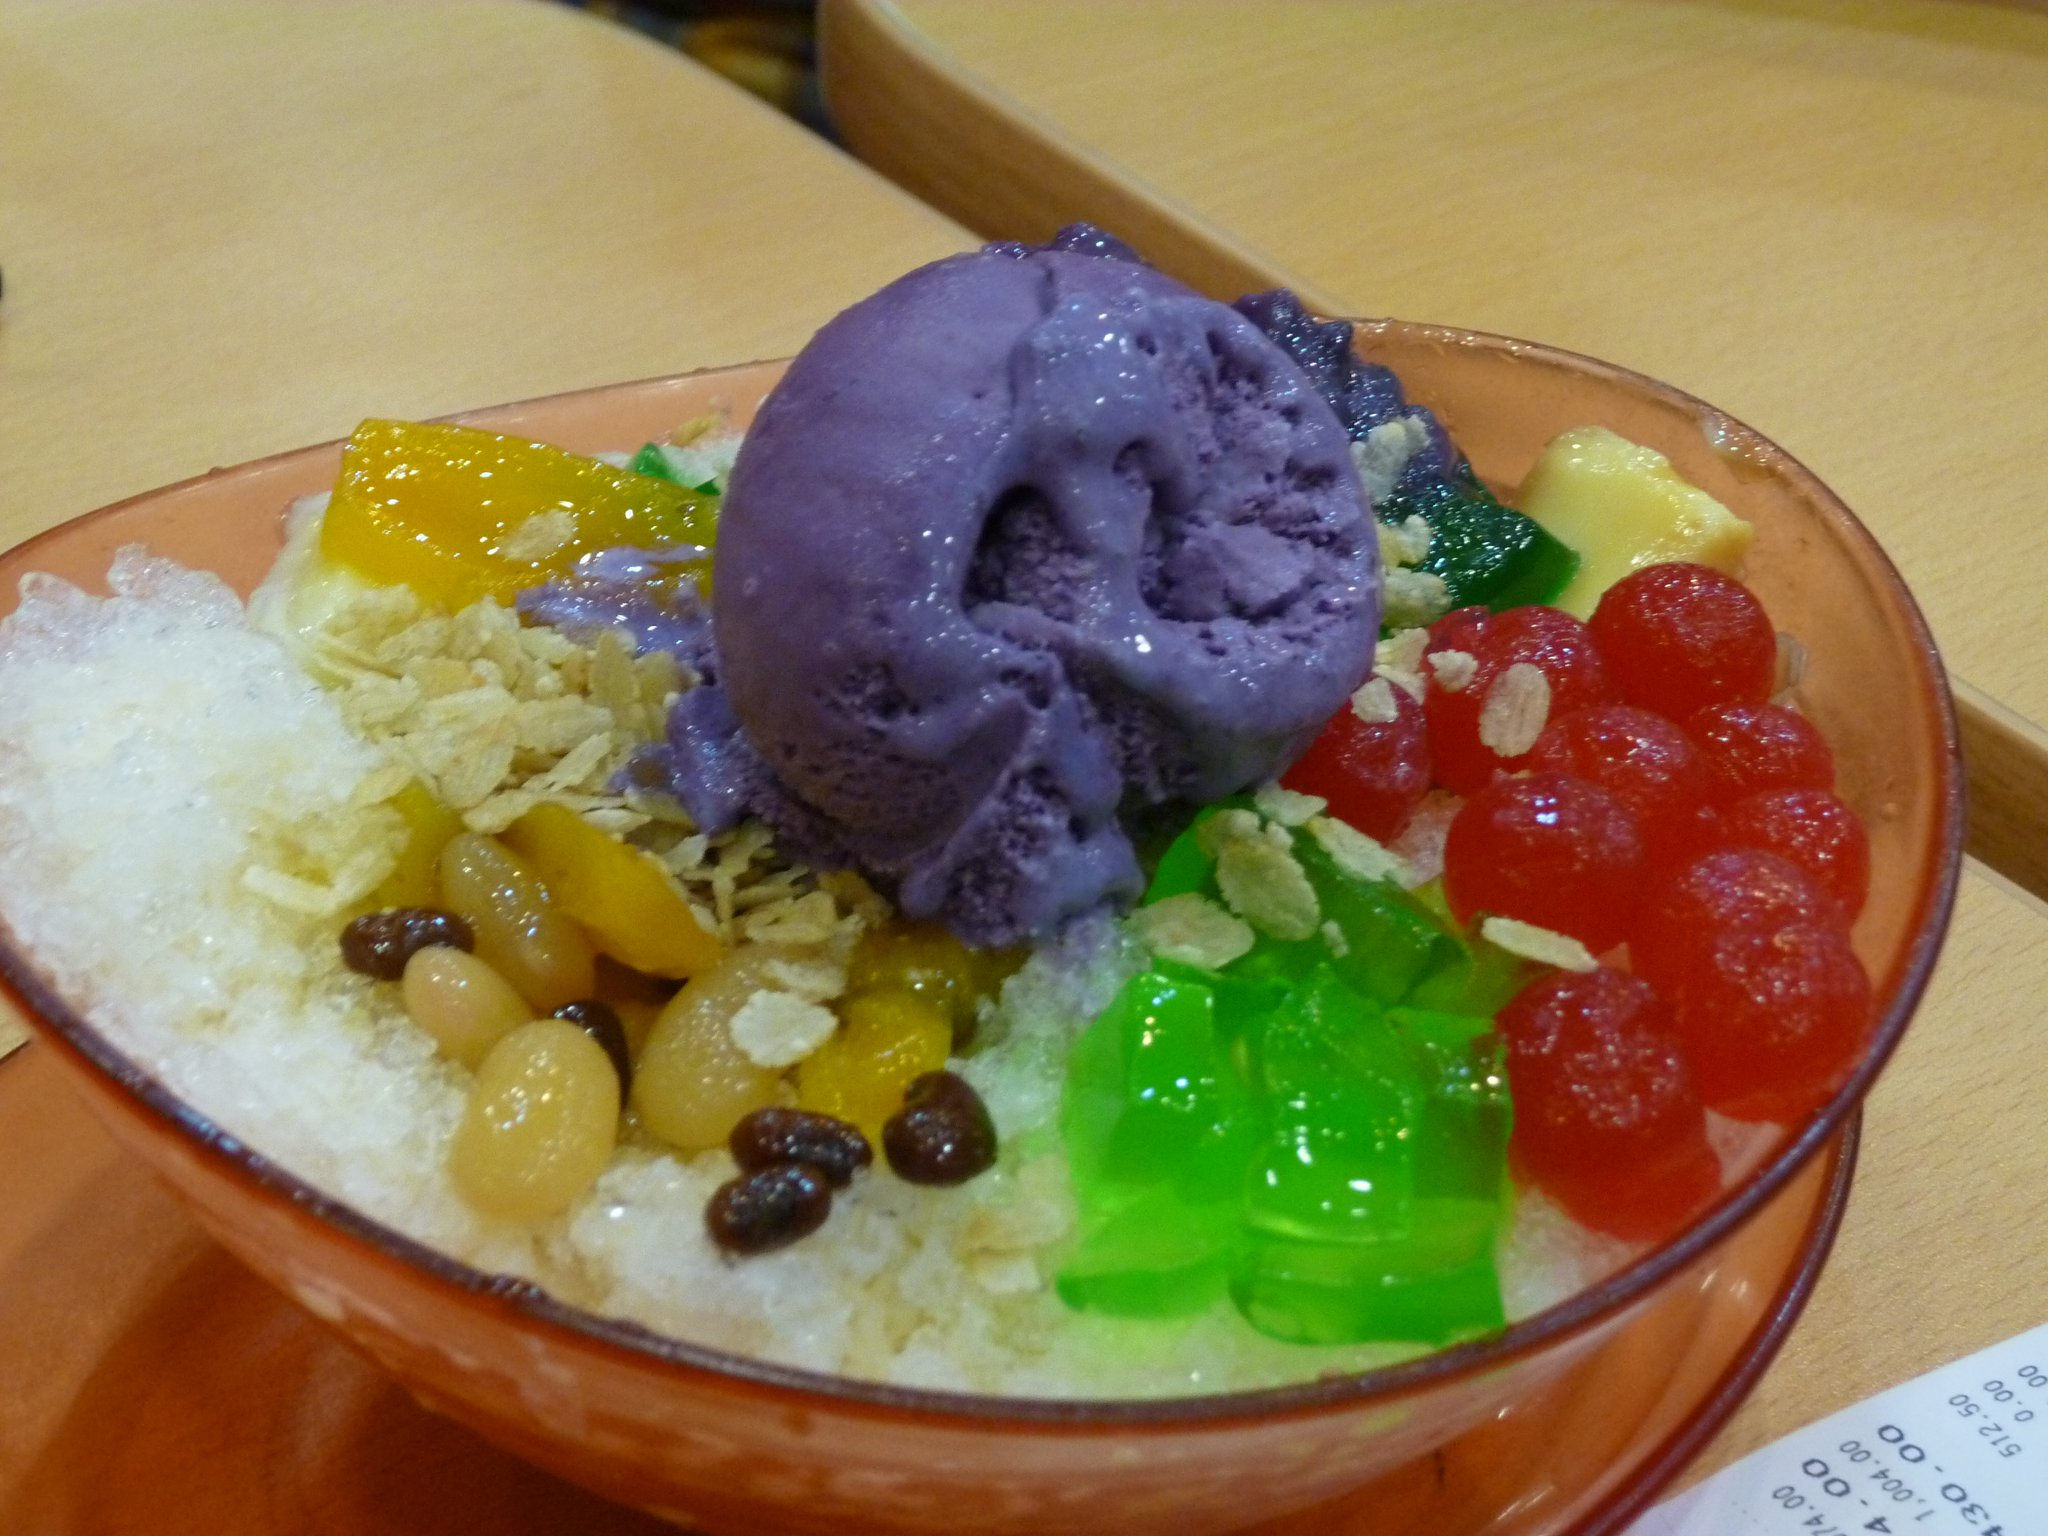 Andrew Zimmern Delicious Destinations Manila -Delicious mixed fruits, beans, tapioca pearls, coconut gel, crushed ice and ice cream